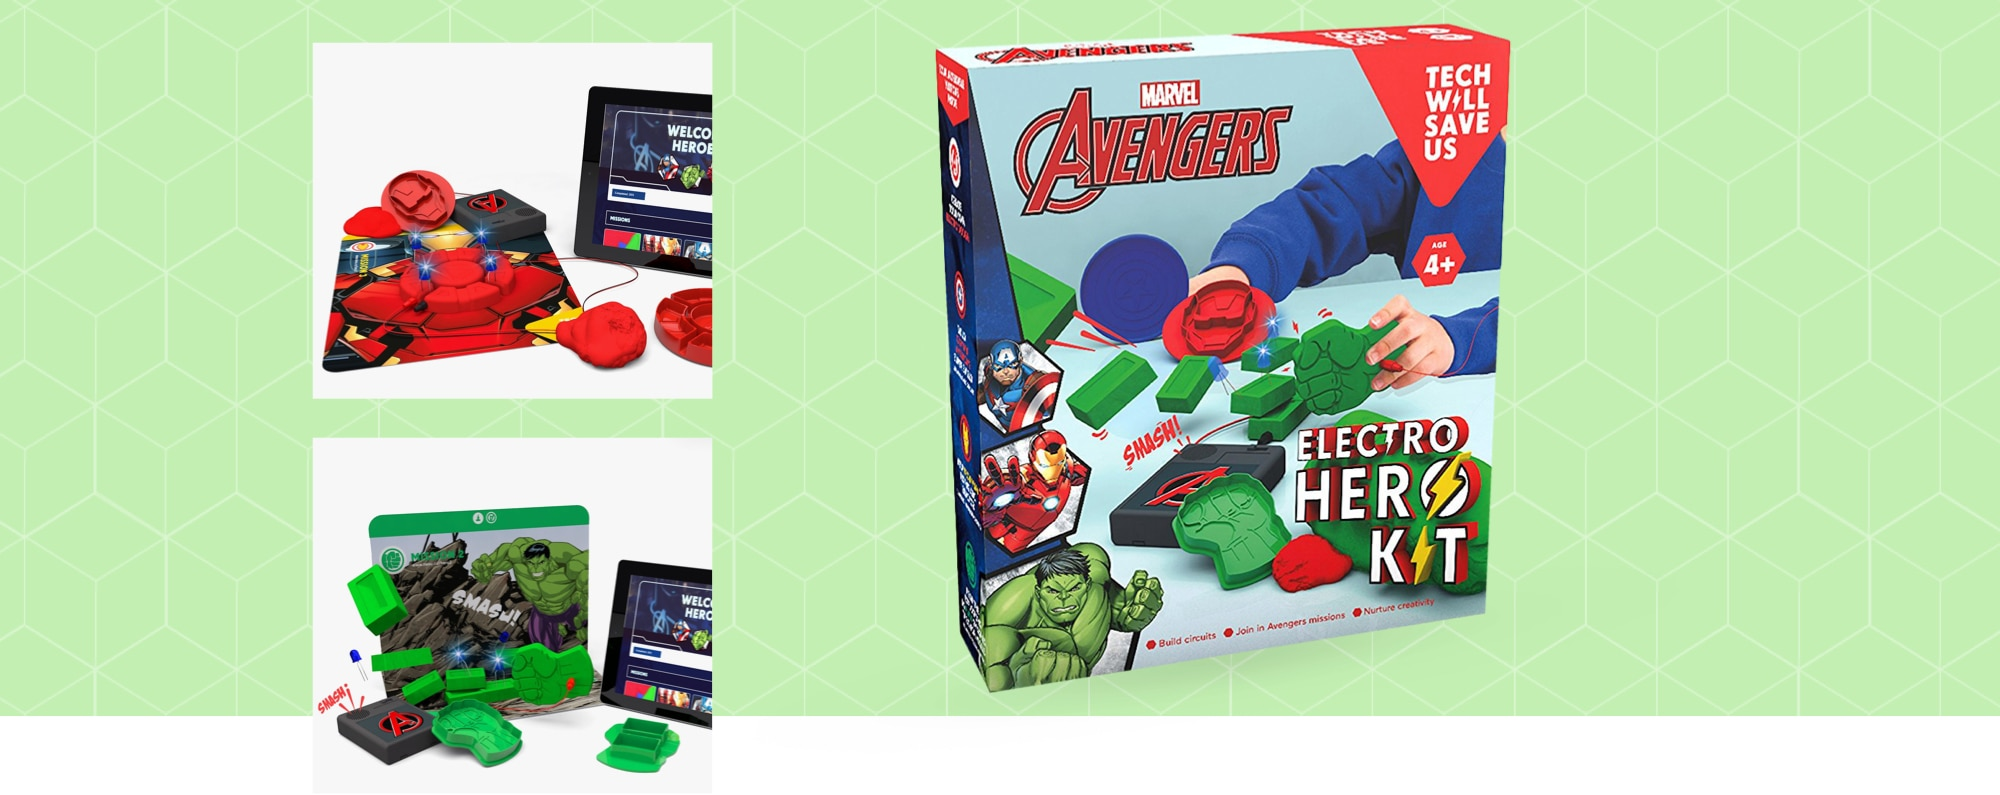 Technology Will Save Us Tech Will Save Us Avengers Electro Hero Kit. Educational Dough Stem Toy